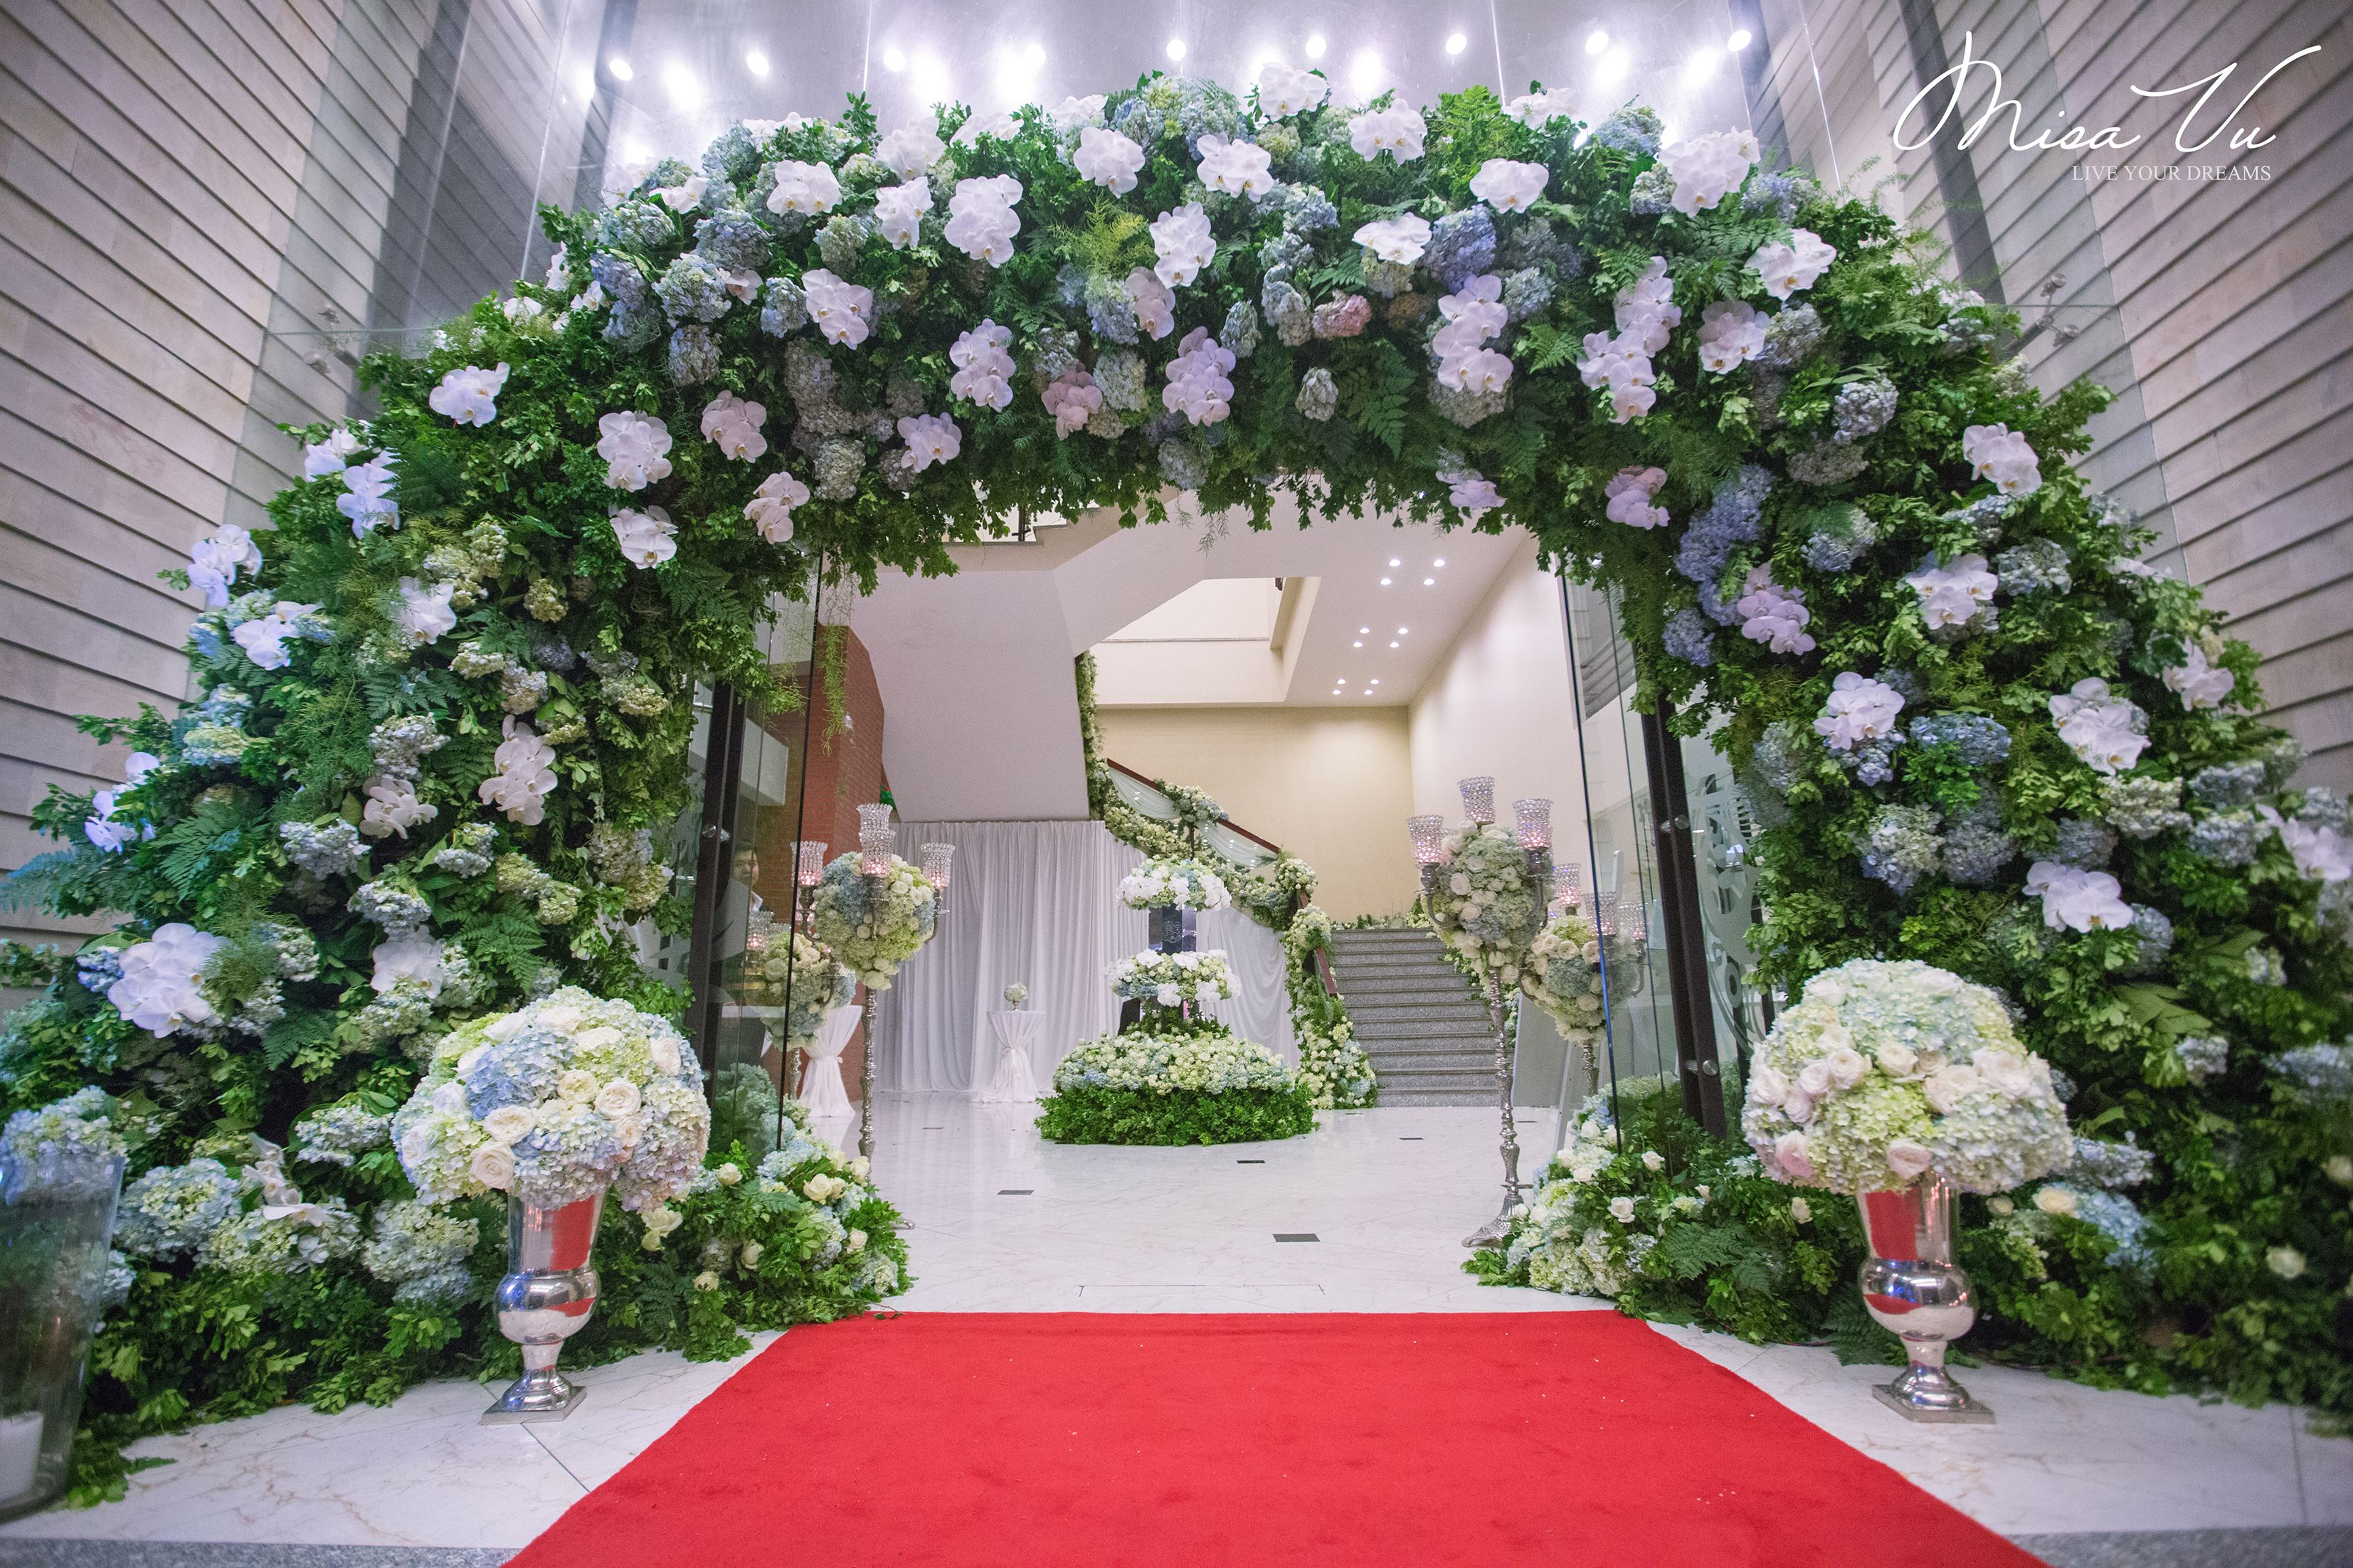 V Concept by Misa Vu Luxury Events Tung+Ha #misavuluxuryevents #MisaVu #Decorations #Angelic #Wedding #luxury #white #events #stage #aisle #architecture #party #space #sketch